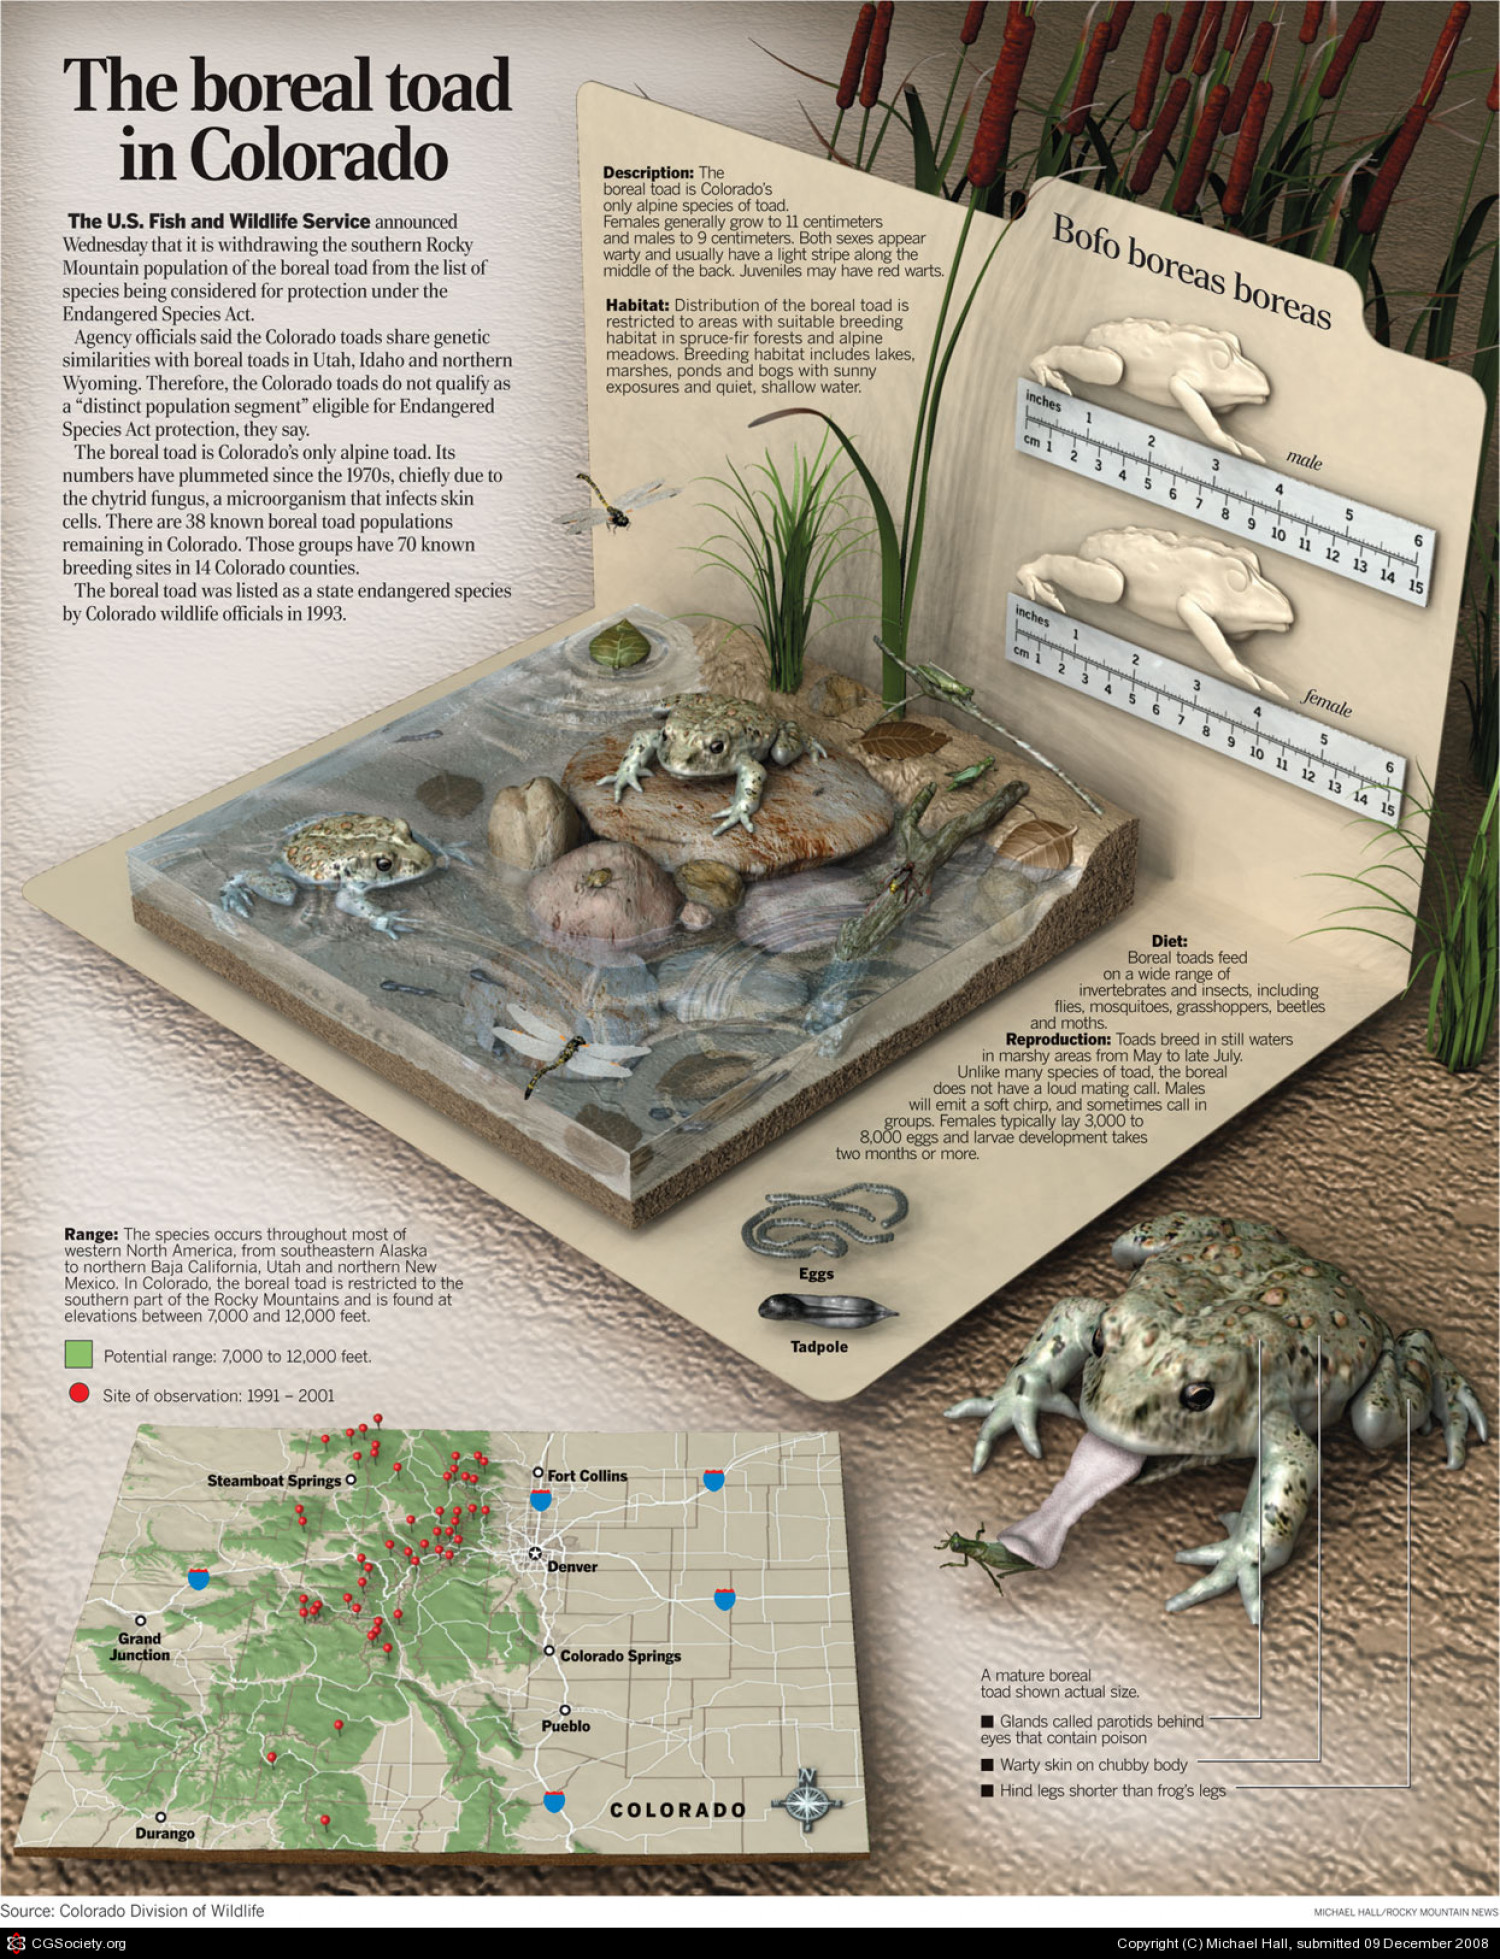 The Boreal Toad in Colorado Infographic